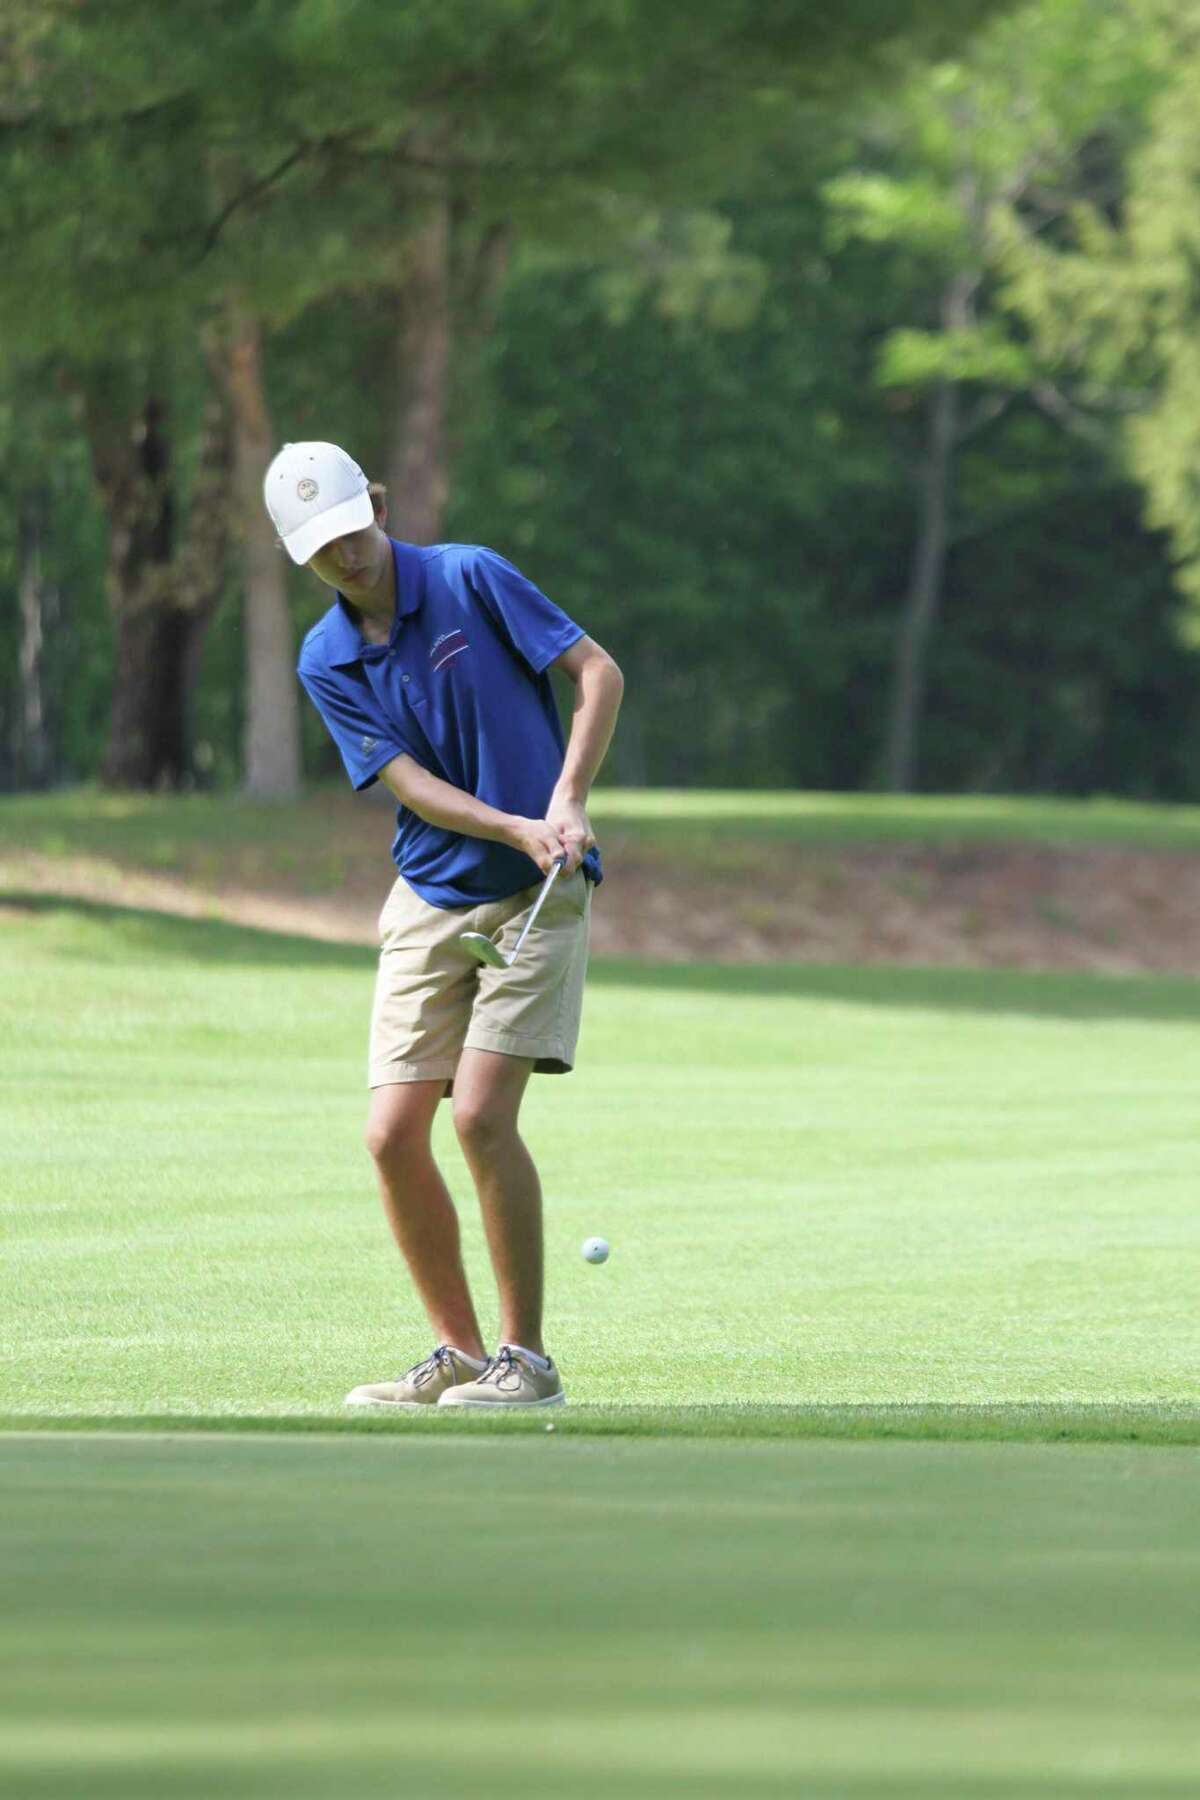 Manistee Catholic Central's Alex Shriver qualified for the Division 4 state finals with his performance in Thursday's regional. (News Advocate file photo)